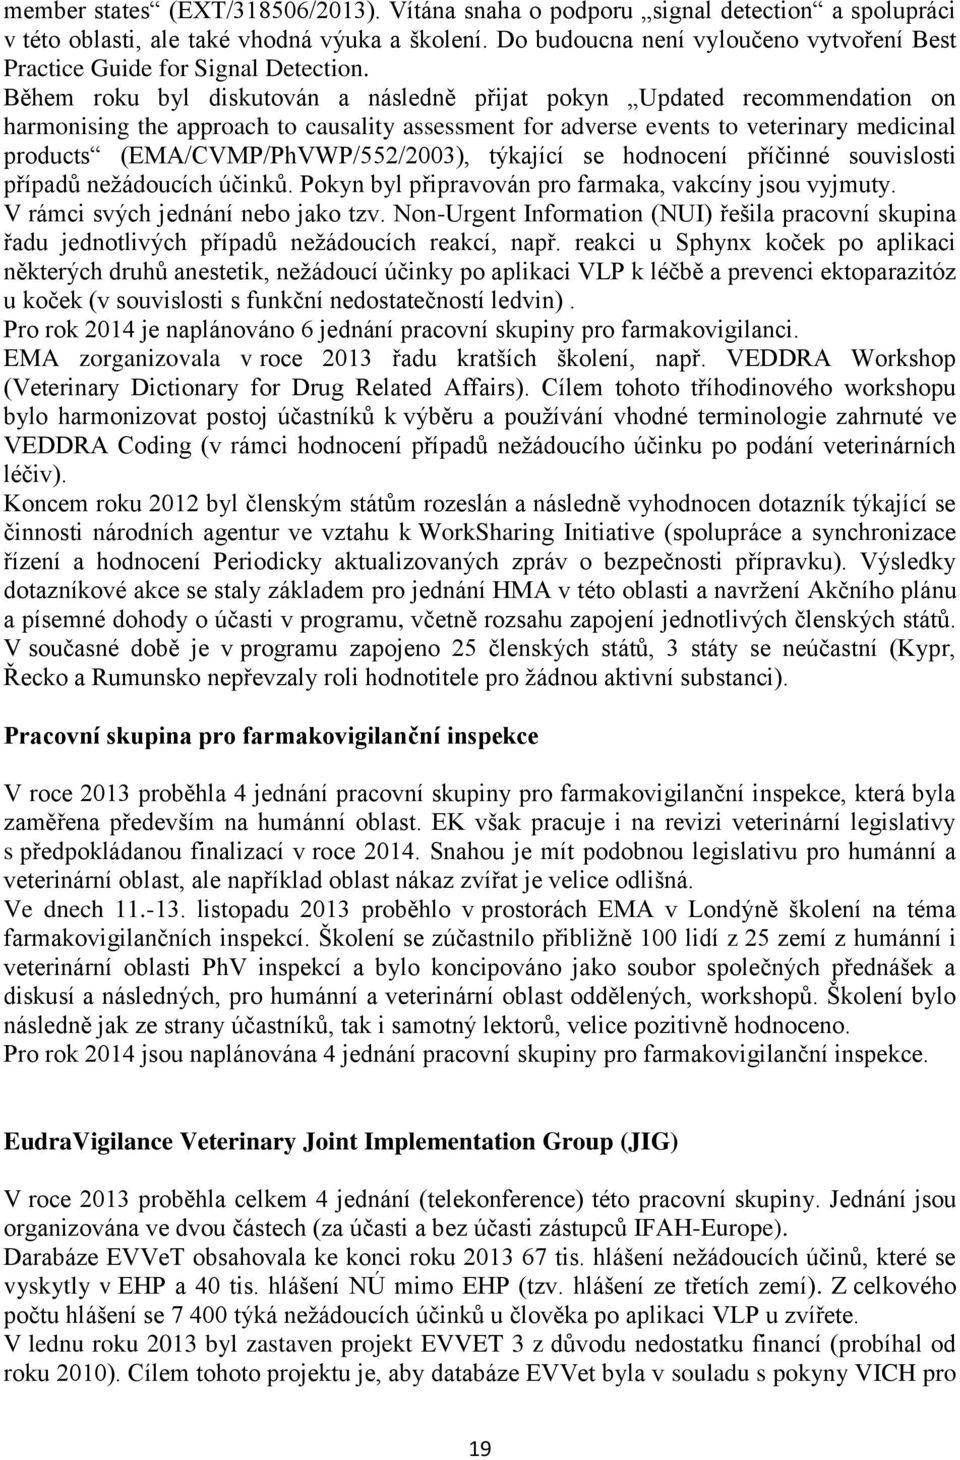 Během roku byl diskutován a následně přijat pokyn Updated recommendation on harmonising the approach to causality assessment for adverse events to veterinary medicinal products